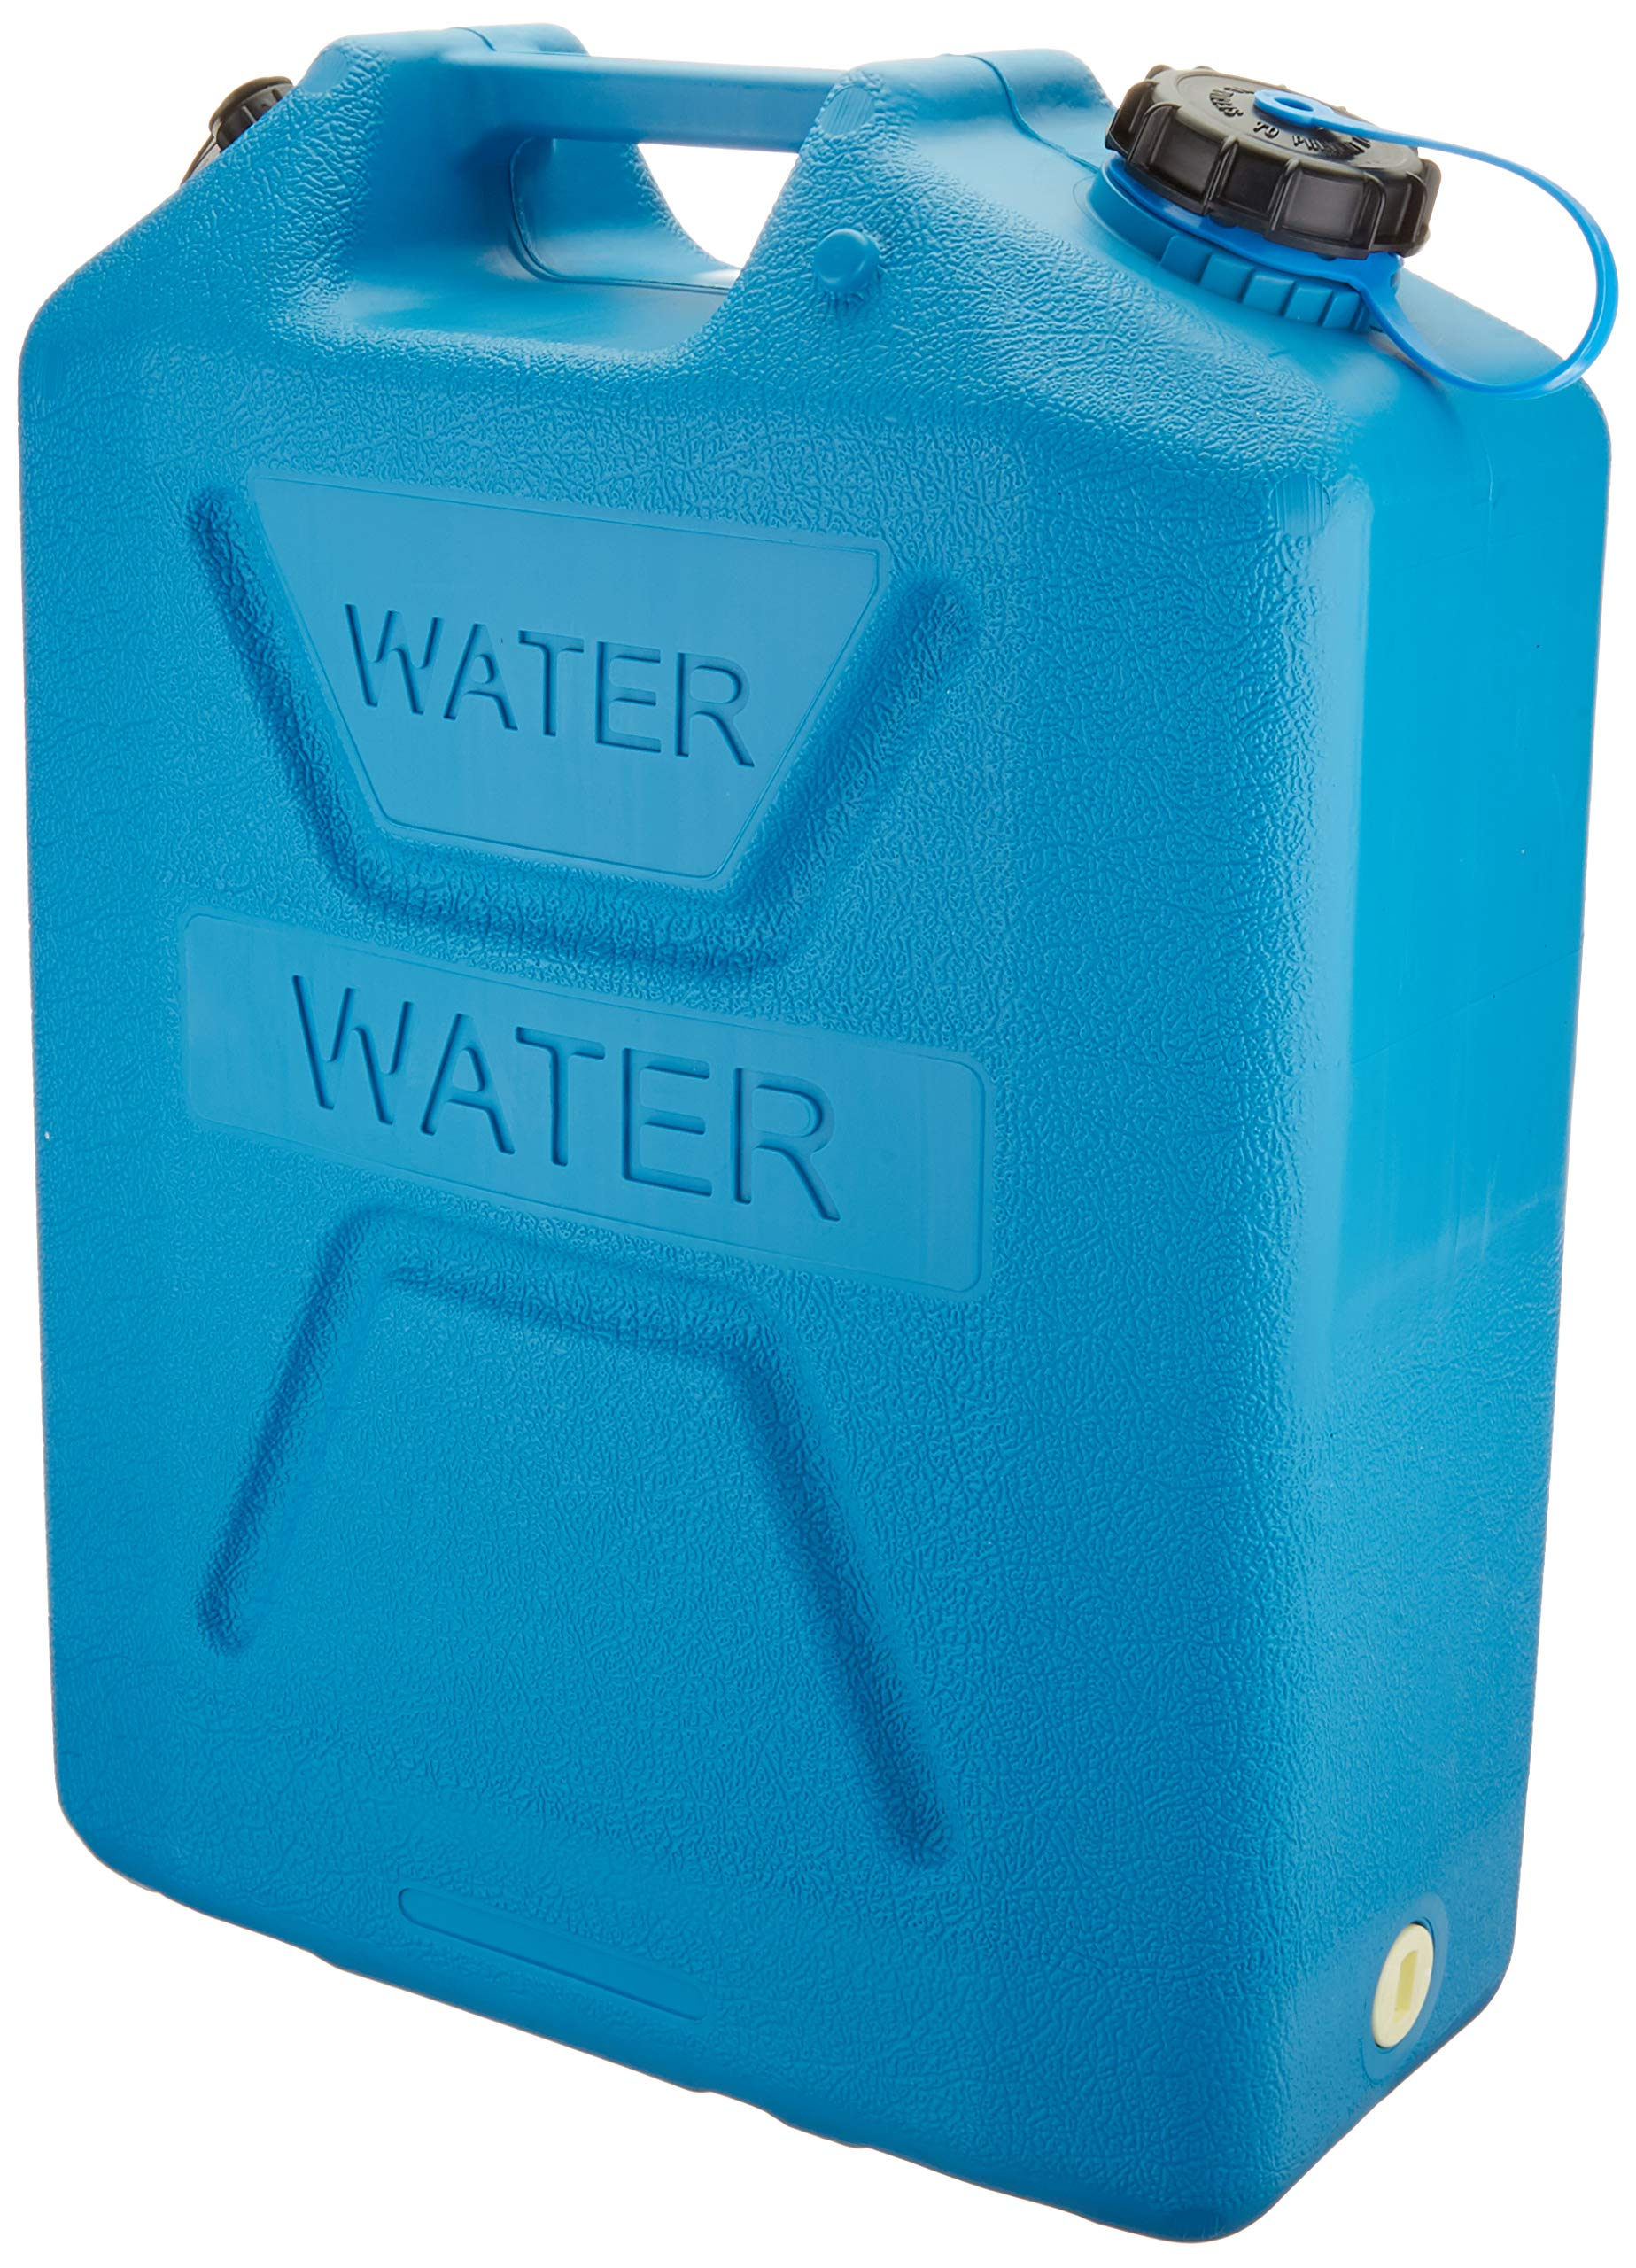 Wavian USA 3216 5 Gallon Dring Water Can with Spout UV Stabilized BPA Free Textured Military Grade Heavy Duty Anti Bacterial Resin Made in Australia (Blue) by Wavian USA